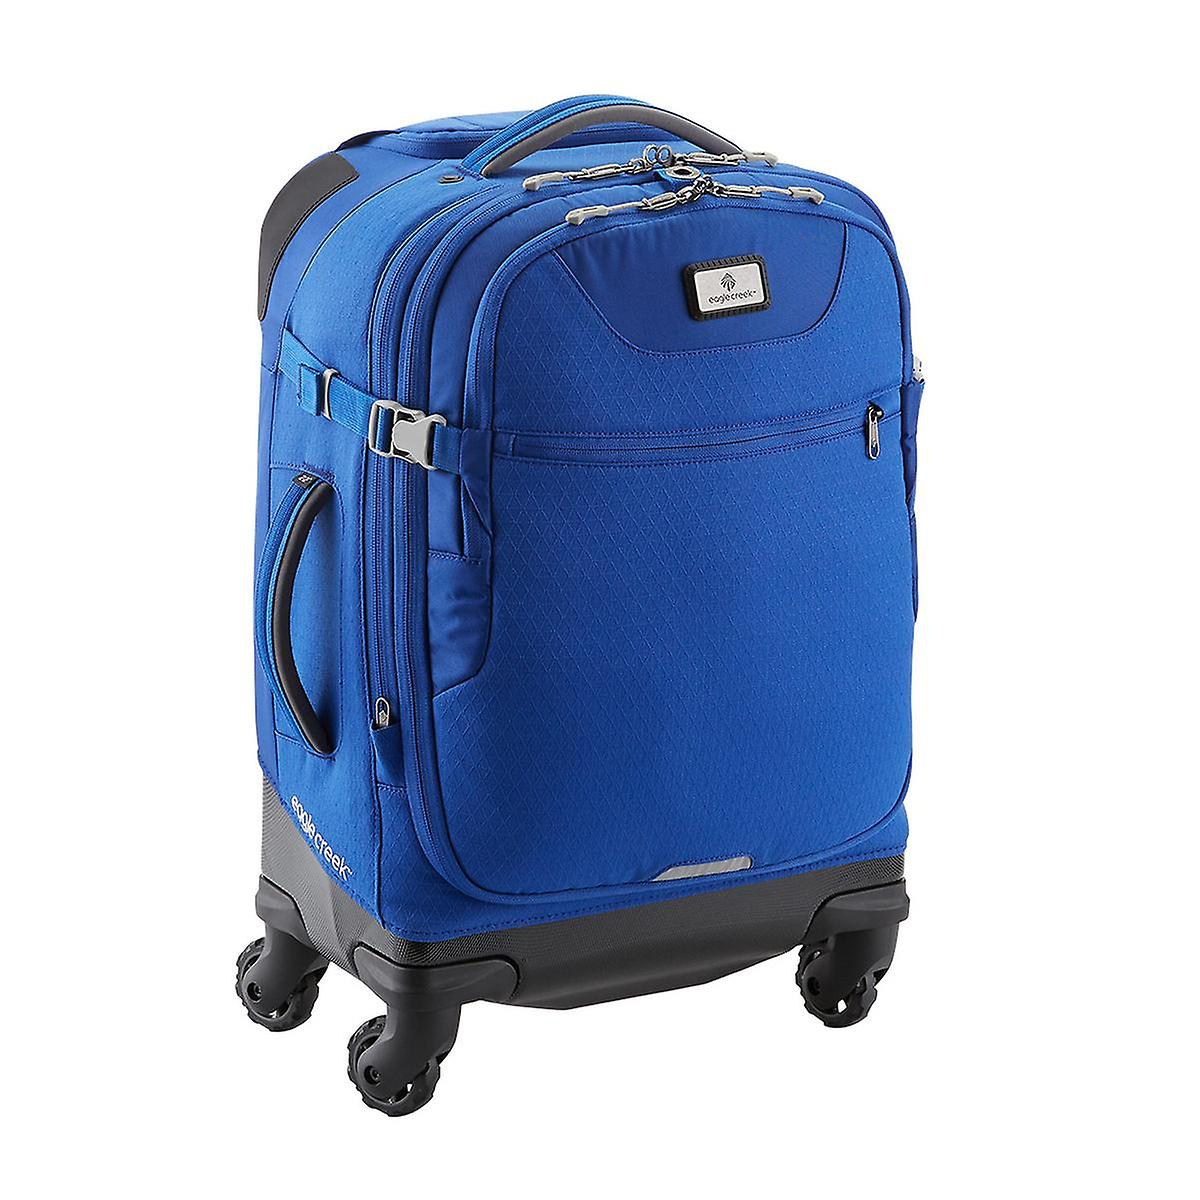 "Eagle Creek Blue 22"" Explore Luggage Solution Starter Kit"